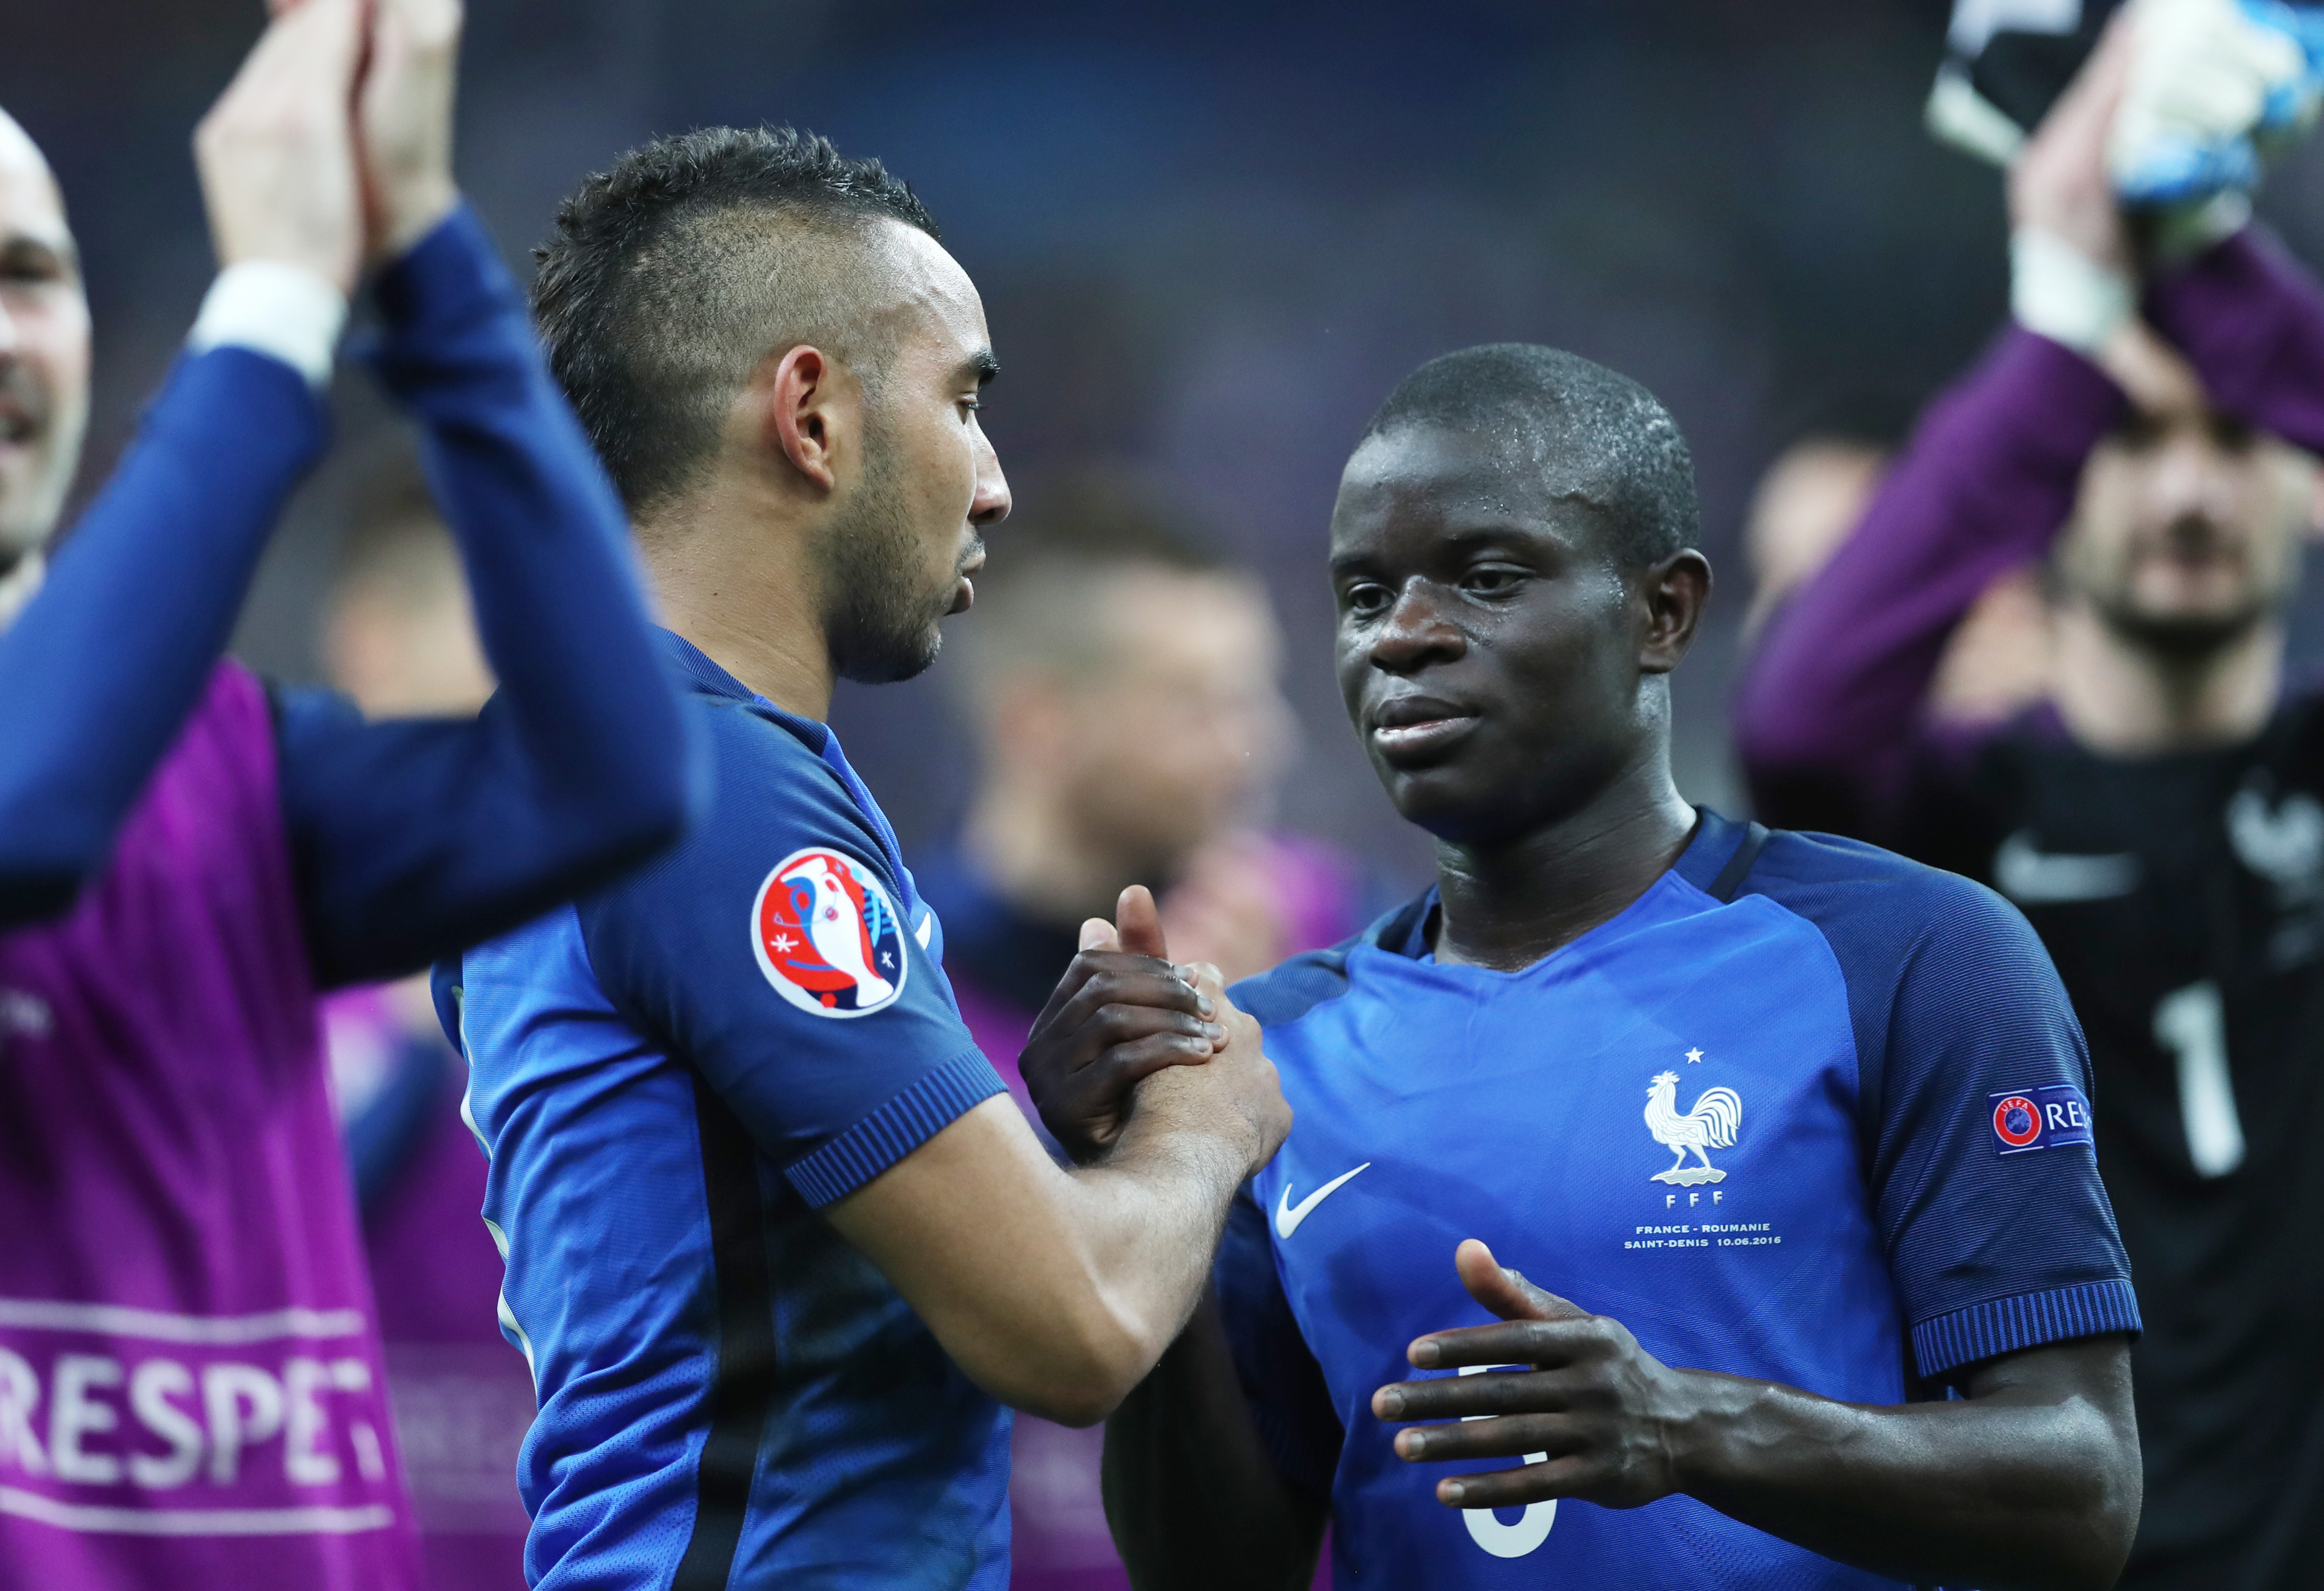 Leicester to improve N'Golo Kante offer above £100,000 in bid to end Chelsea interest